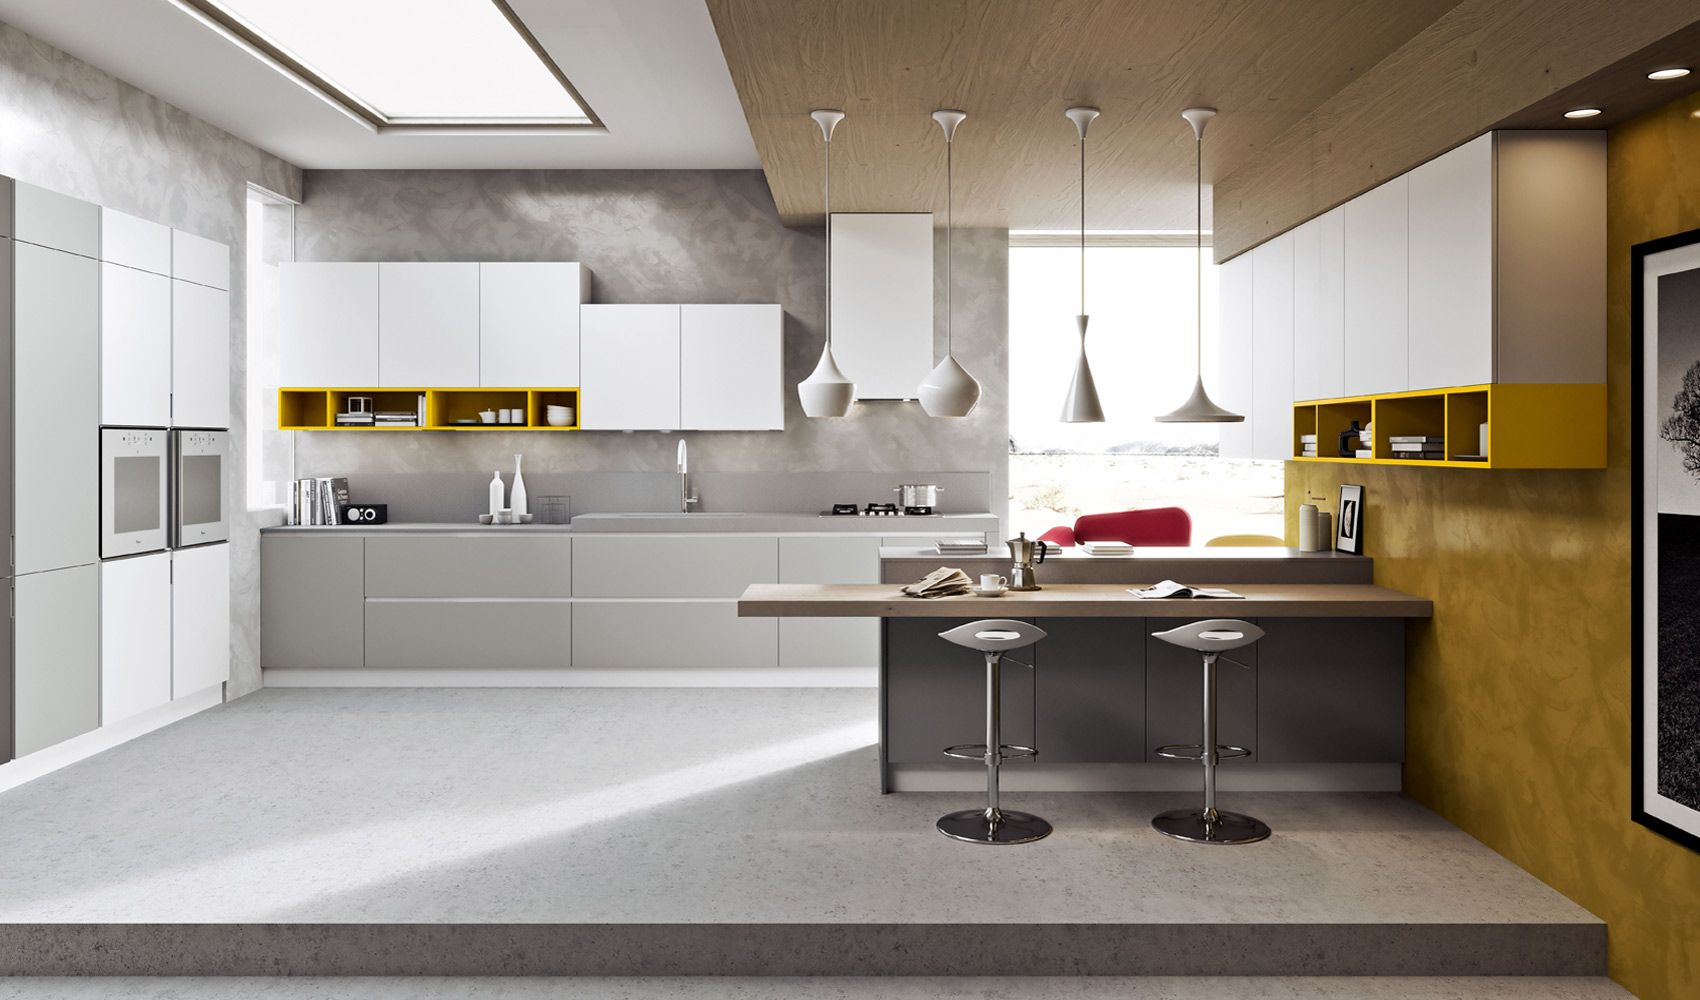 Pale Orange Kitchen suitable to apply modern kitchen designs combined with